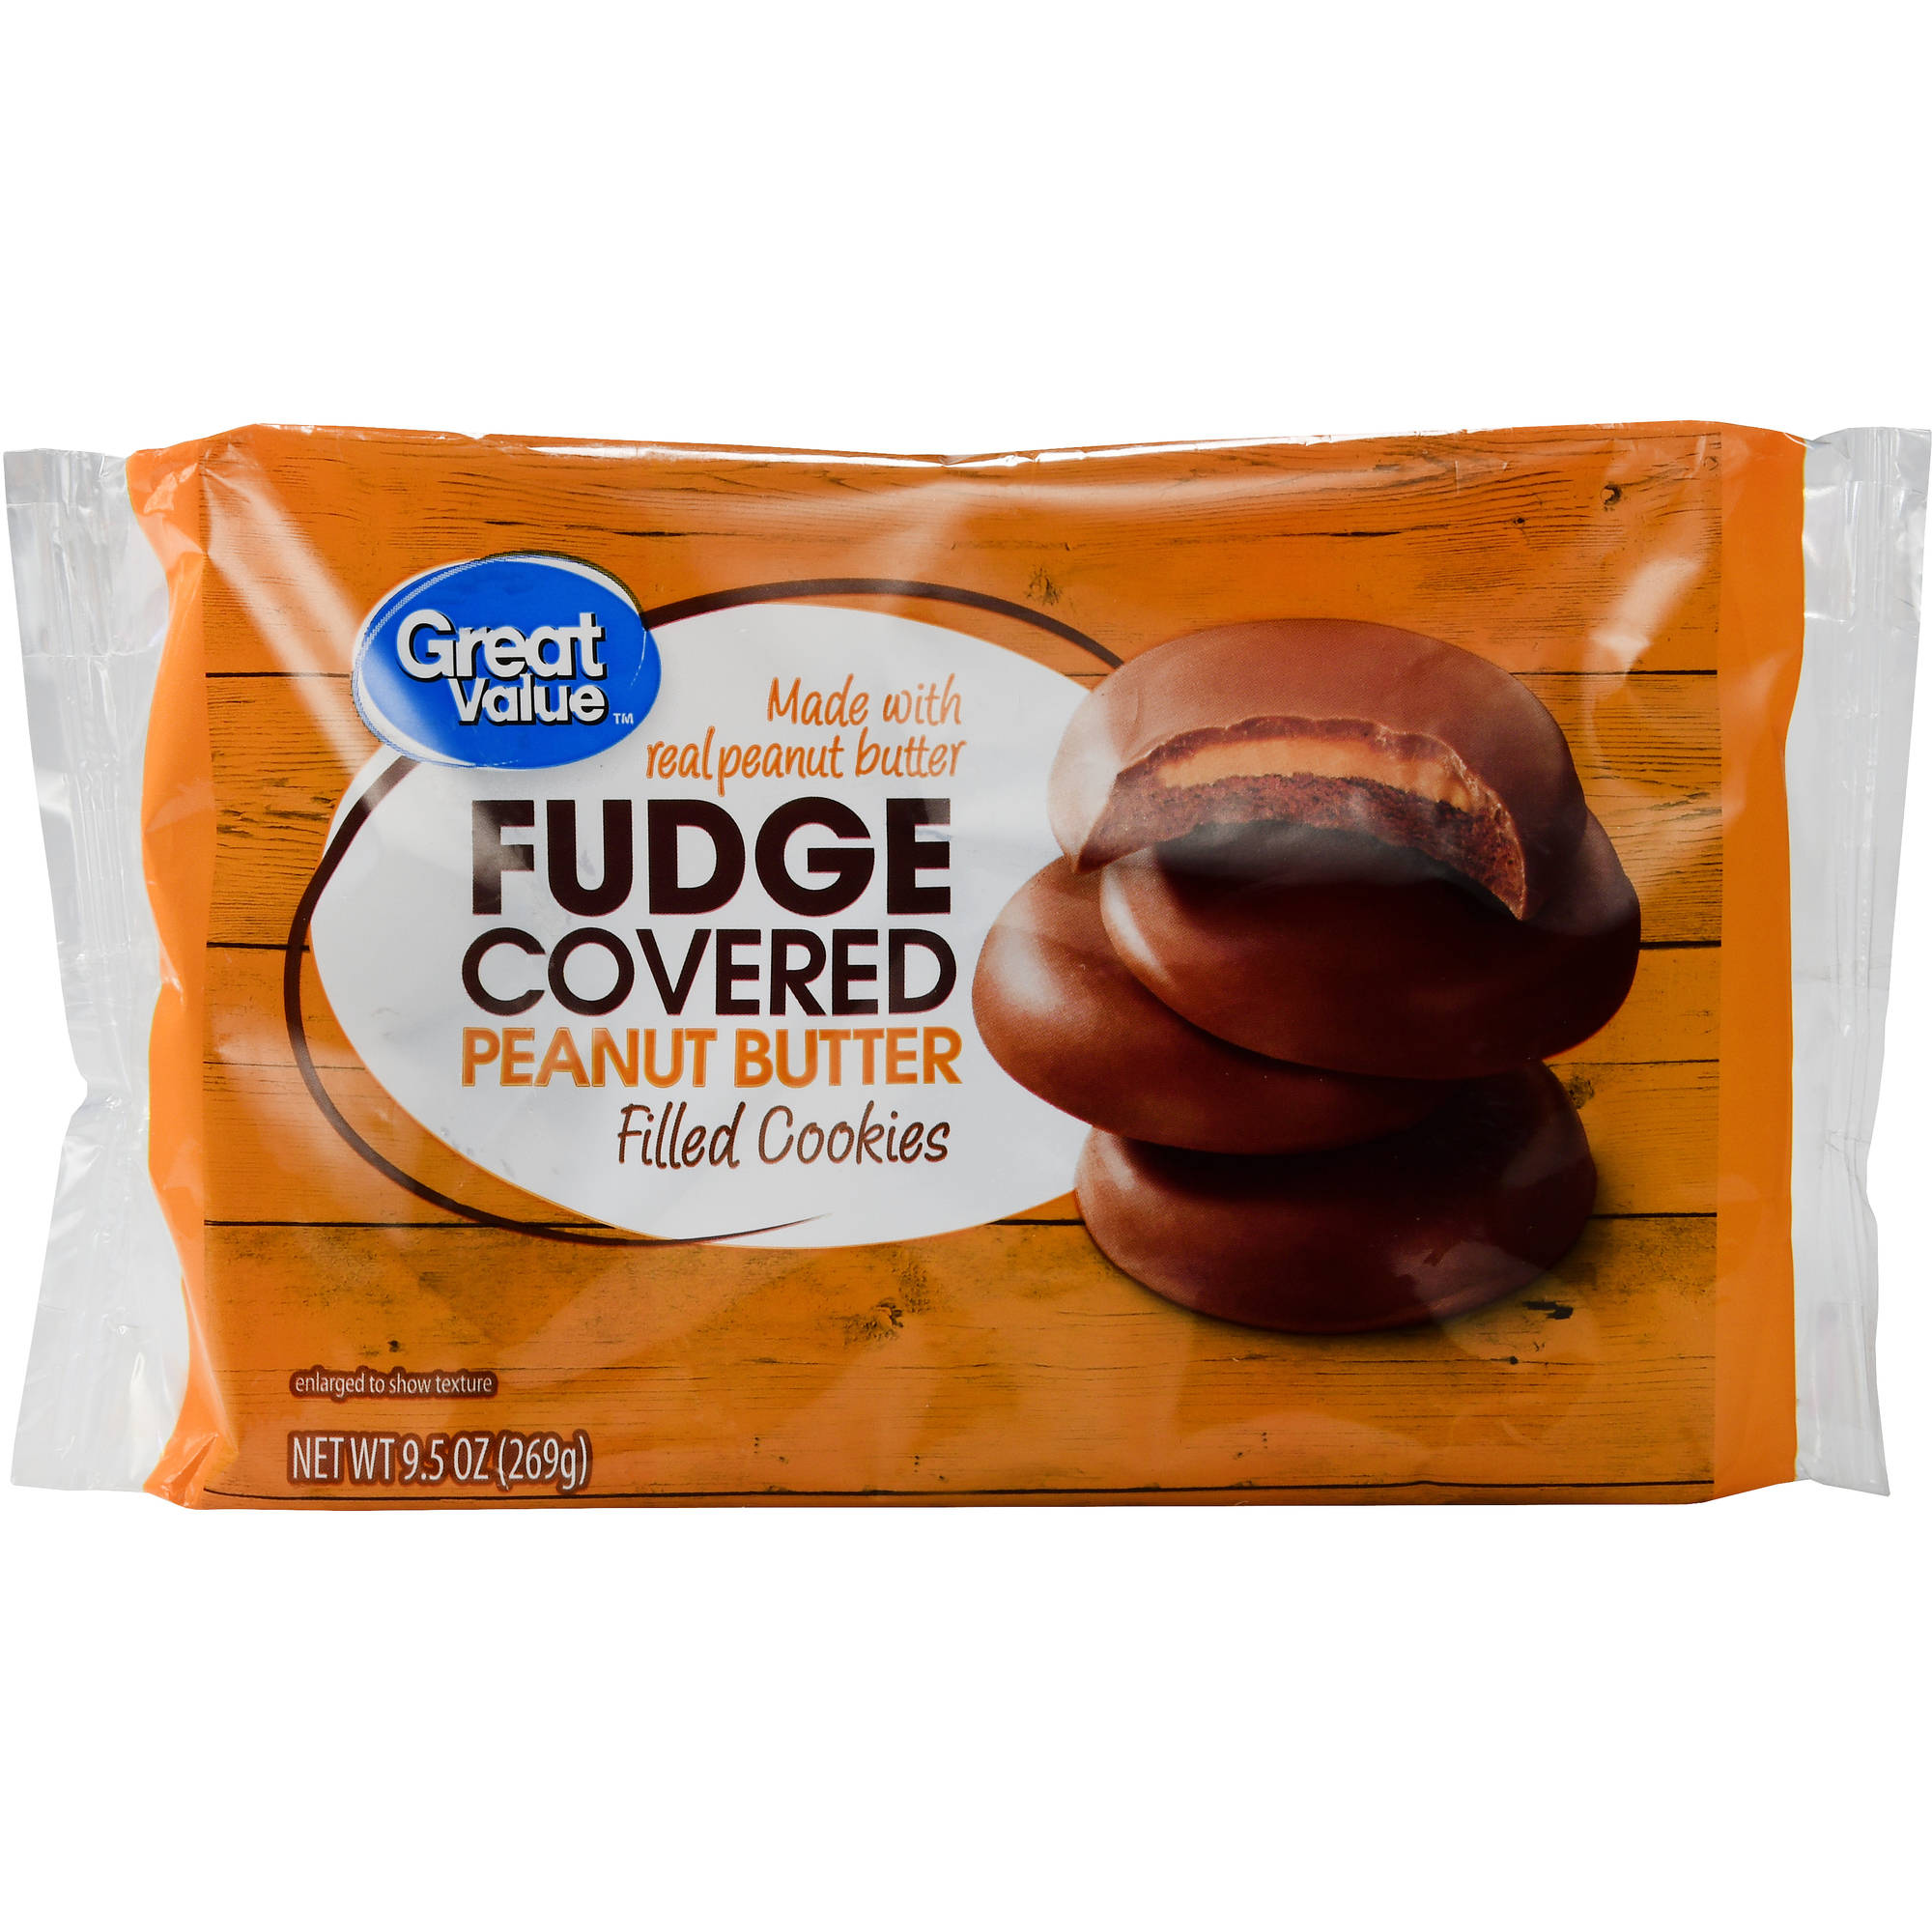 Great Value Fudge Covered Peanut Butter Filled Cookies, 9.5 oz